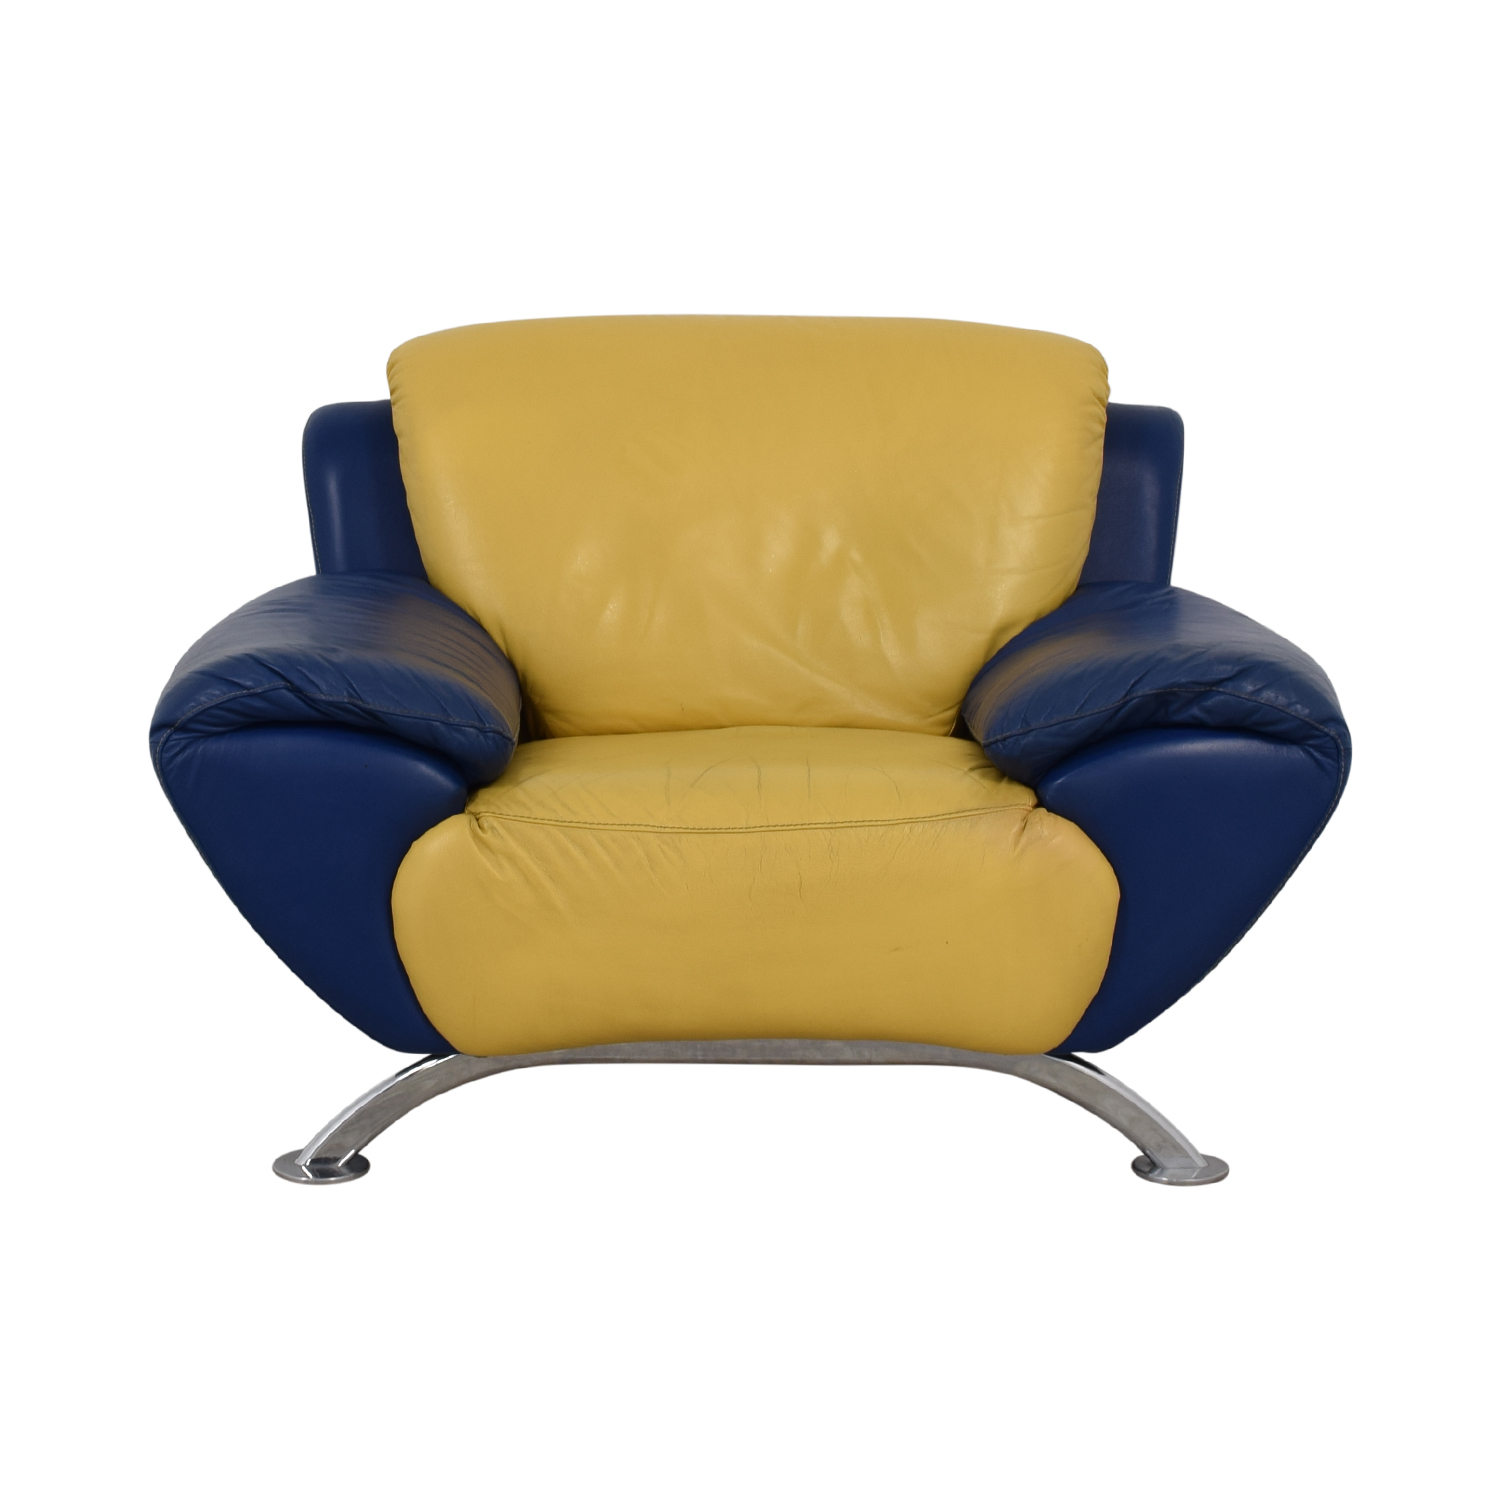 buy Satis Modern Yellow and Blue Leather Accent Chair Satis Accent Chairs